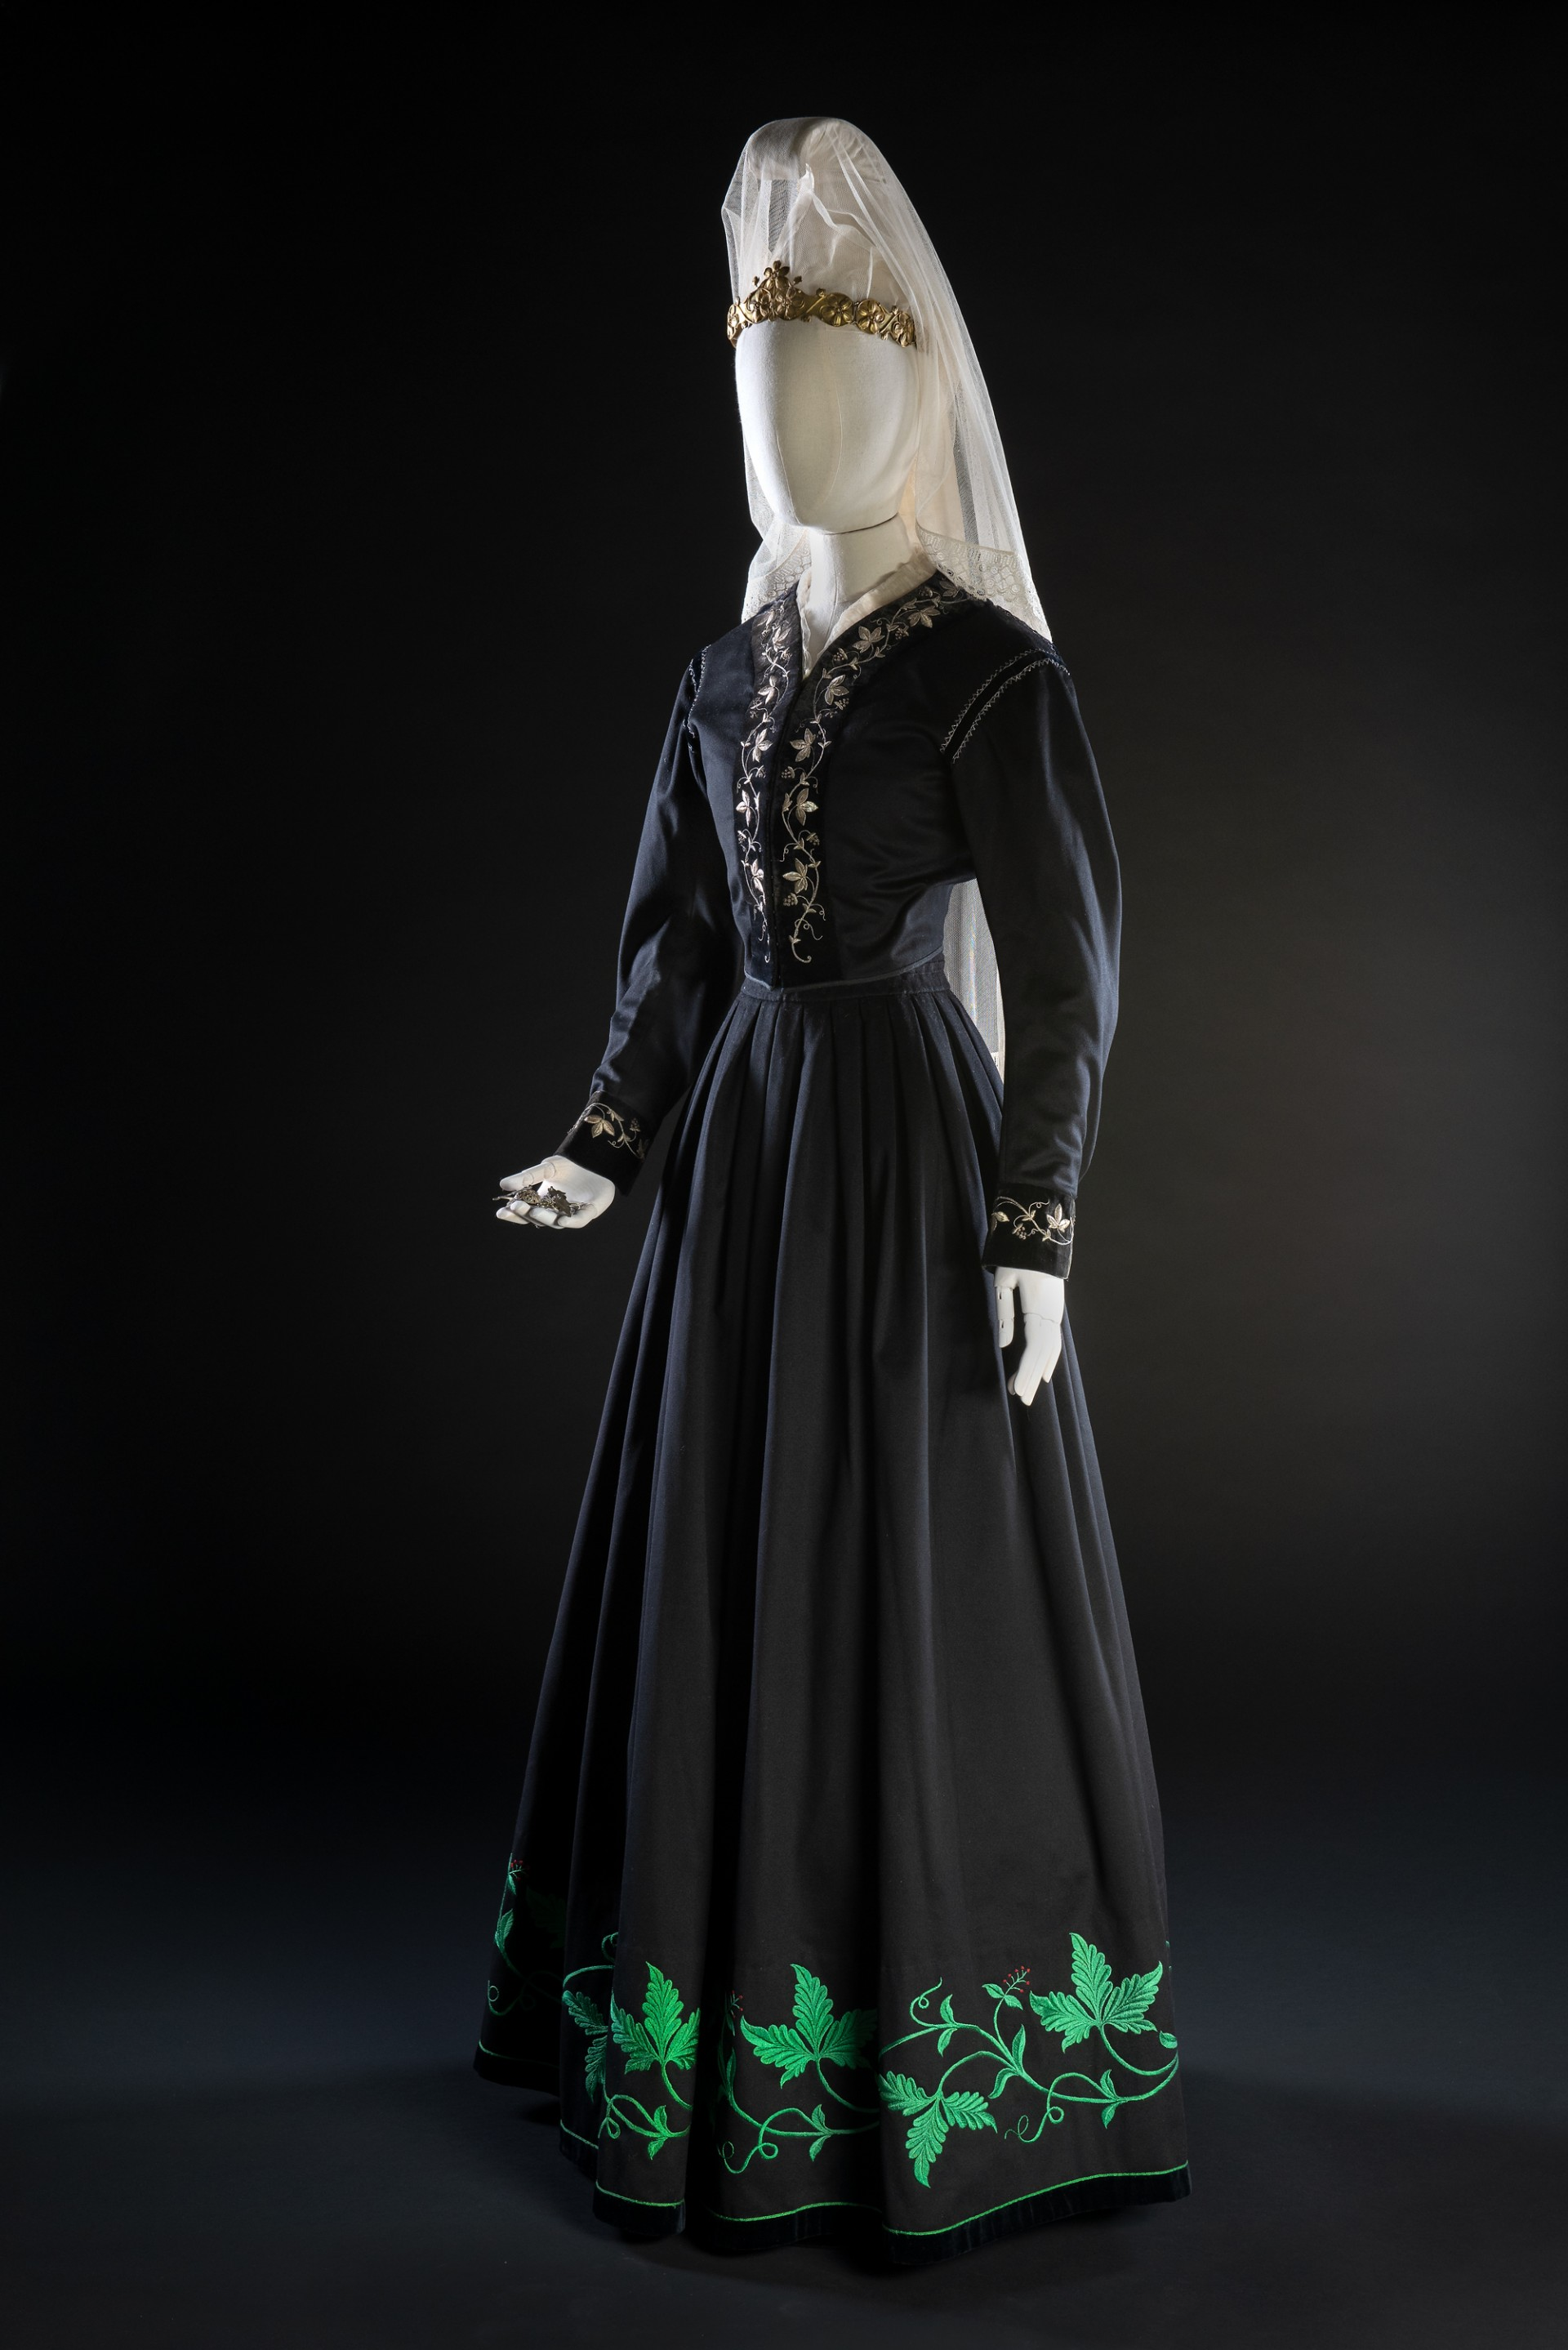 Icelandic formal dress for women consists of a bodice, skirt and jacket. With it, one wore black shoes, knee-length socks, a diadem, a veil and a head covering. An apron was often worn over the skirt, too. The appearance of the outfit may vary slightly, but since the 1850s, it typically looks like this. Formal outfit from Iceland. Acquired by Nordiska museet 1882. NM.0035071A-H. Photo: Nordiska museet